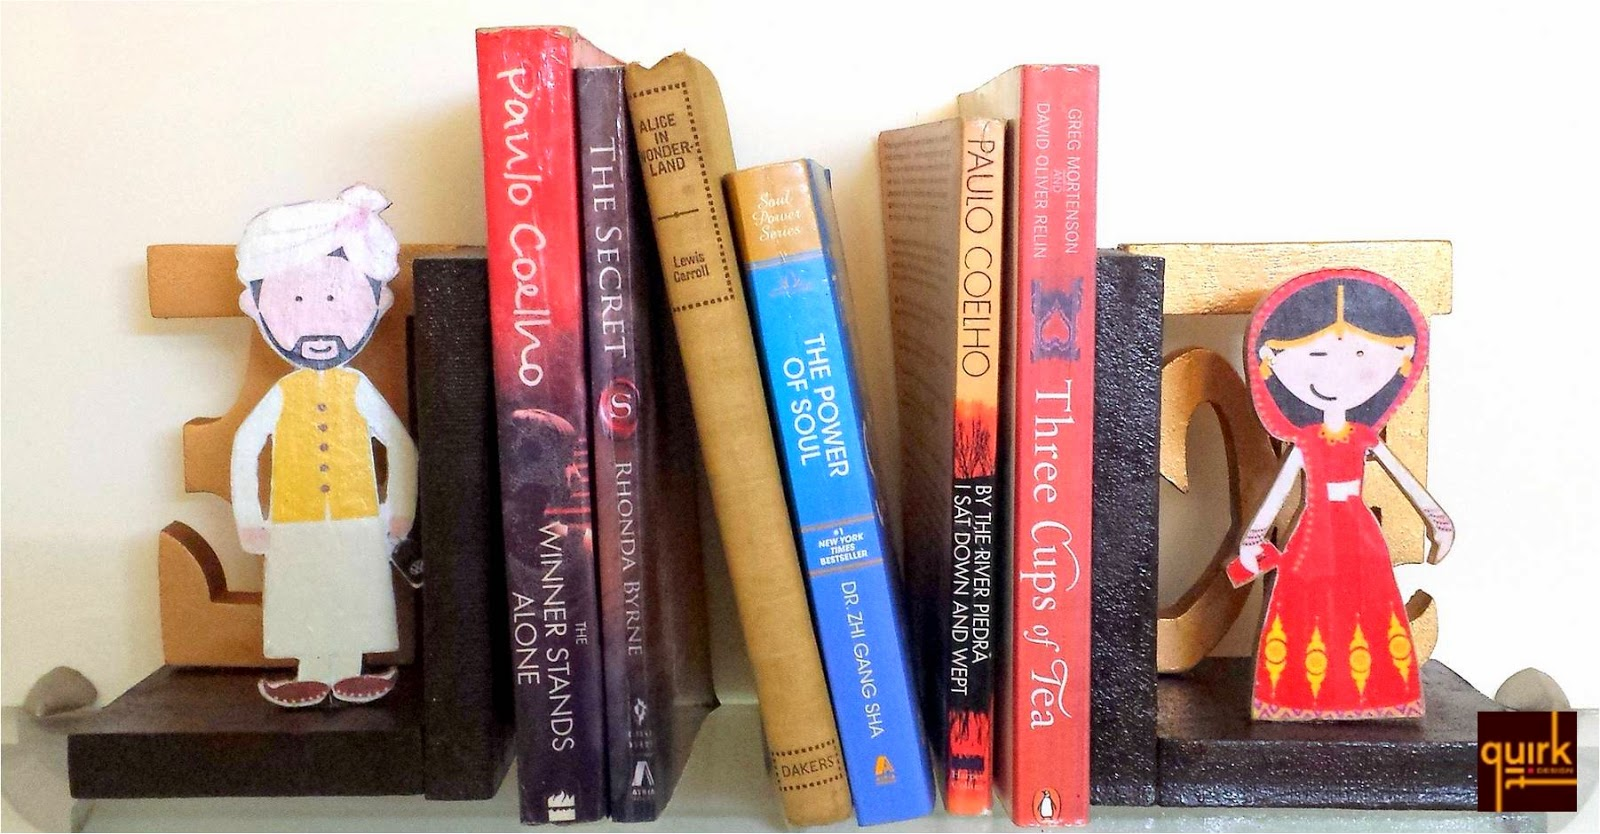 Quirk It Design_personalized book ends_DIY_Quirky_Home_Decor